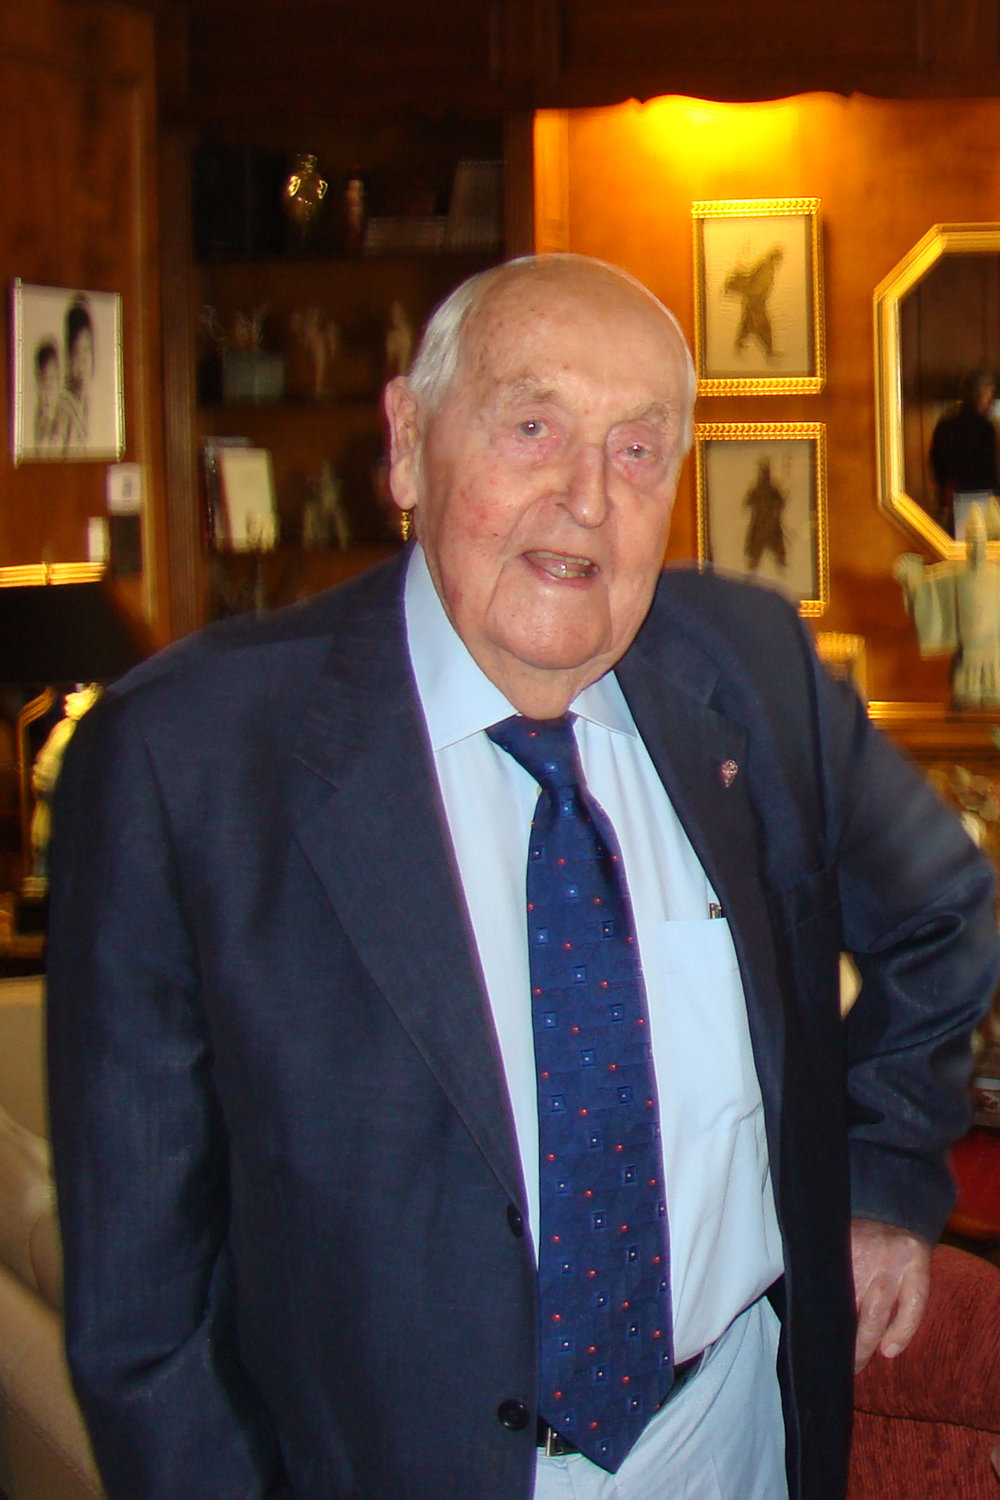 Copy of Sir Lennox Hewitt, 29 Oct '08.jpg